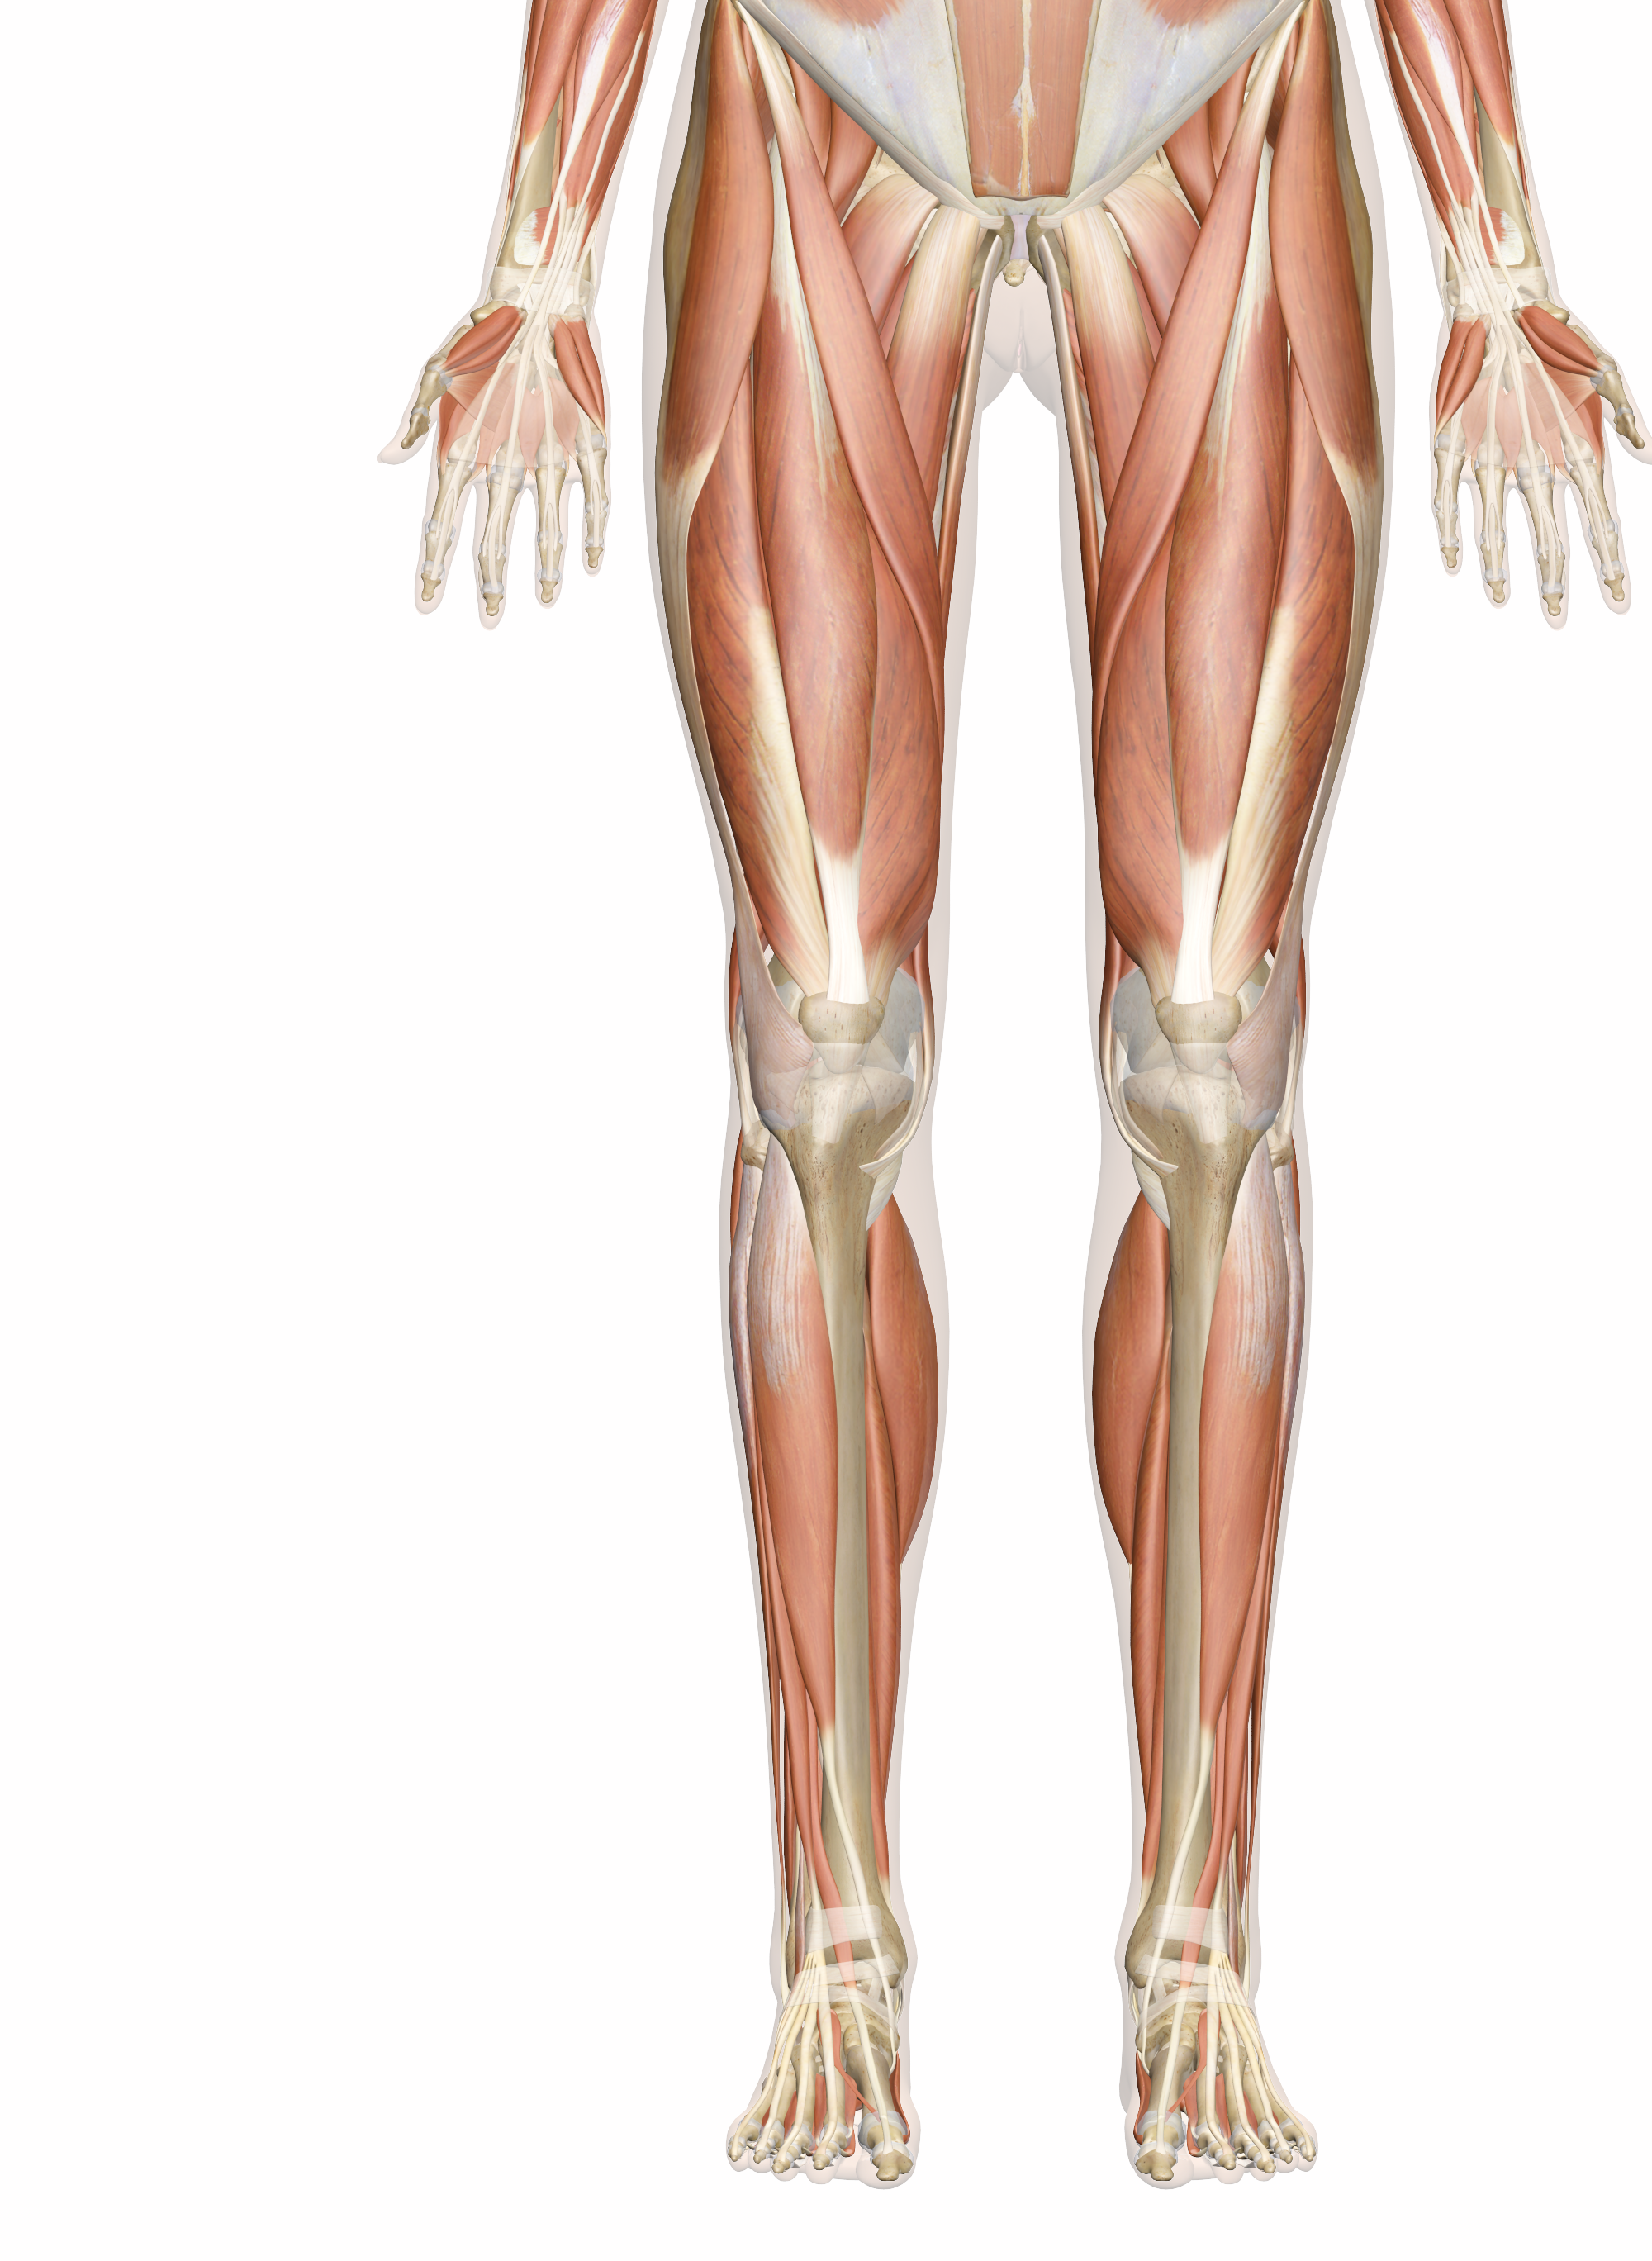 Leg Muscle Png - Muscles of the Leg and Foot